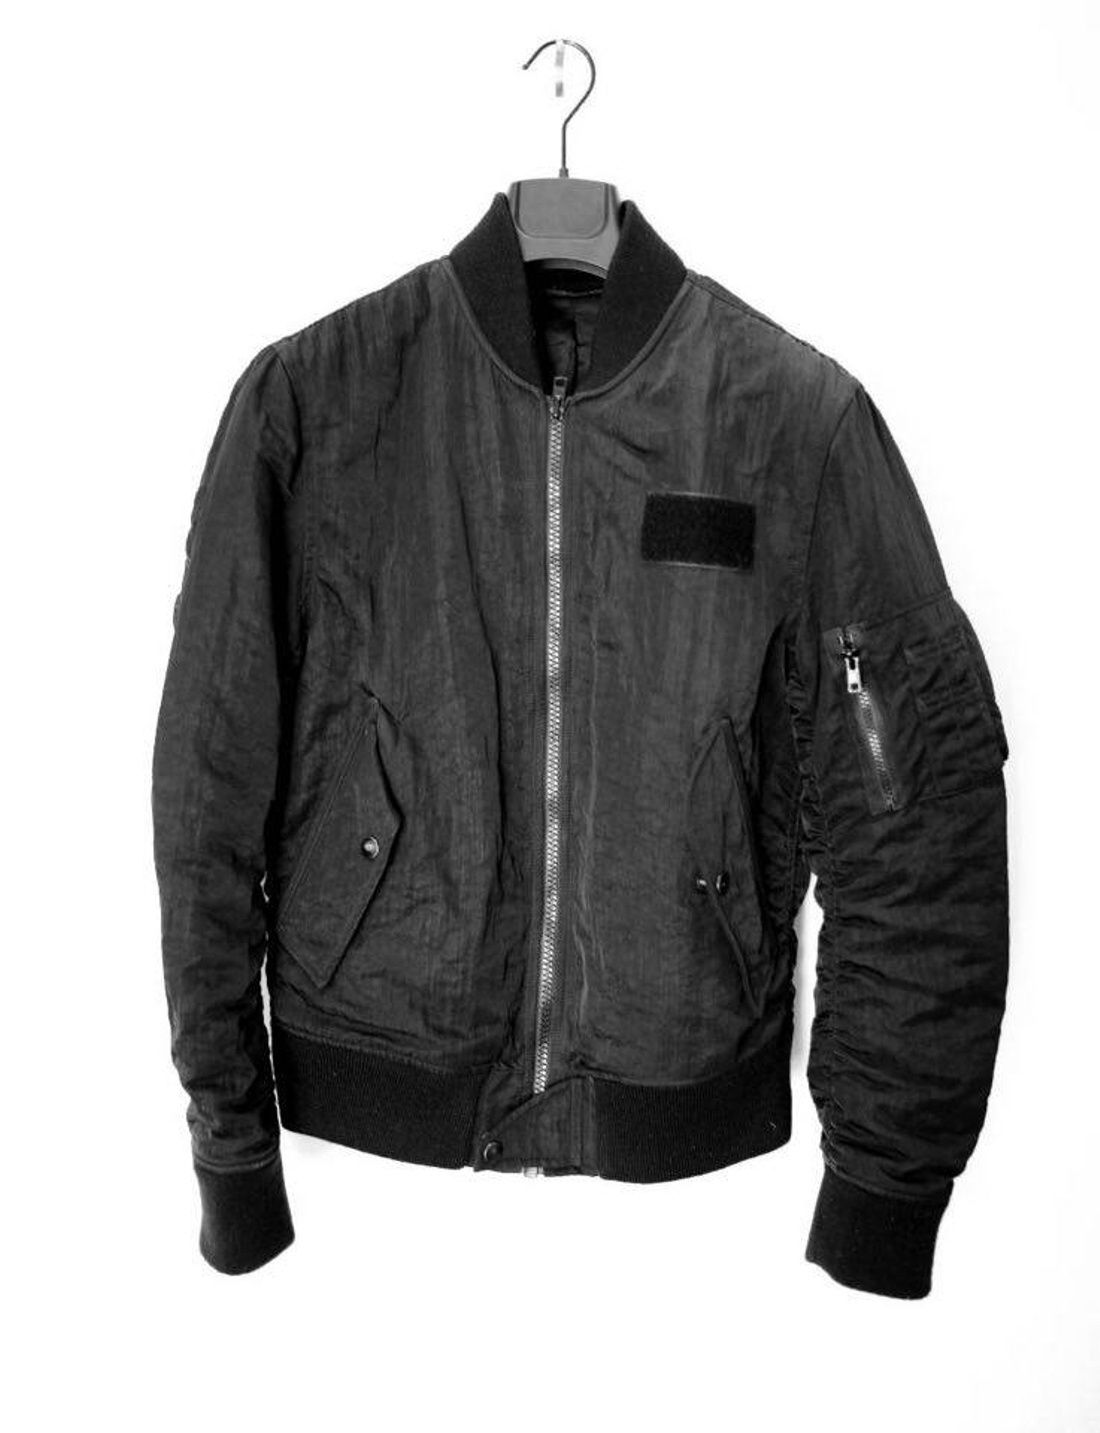 Leather jacket aesthetic - Acne Studios Gives A Classic Design Which Typifies The Scandinavian Brand S Refined Approach And Minimalist Aesthetic This Bomber Jacket Is